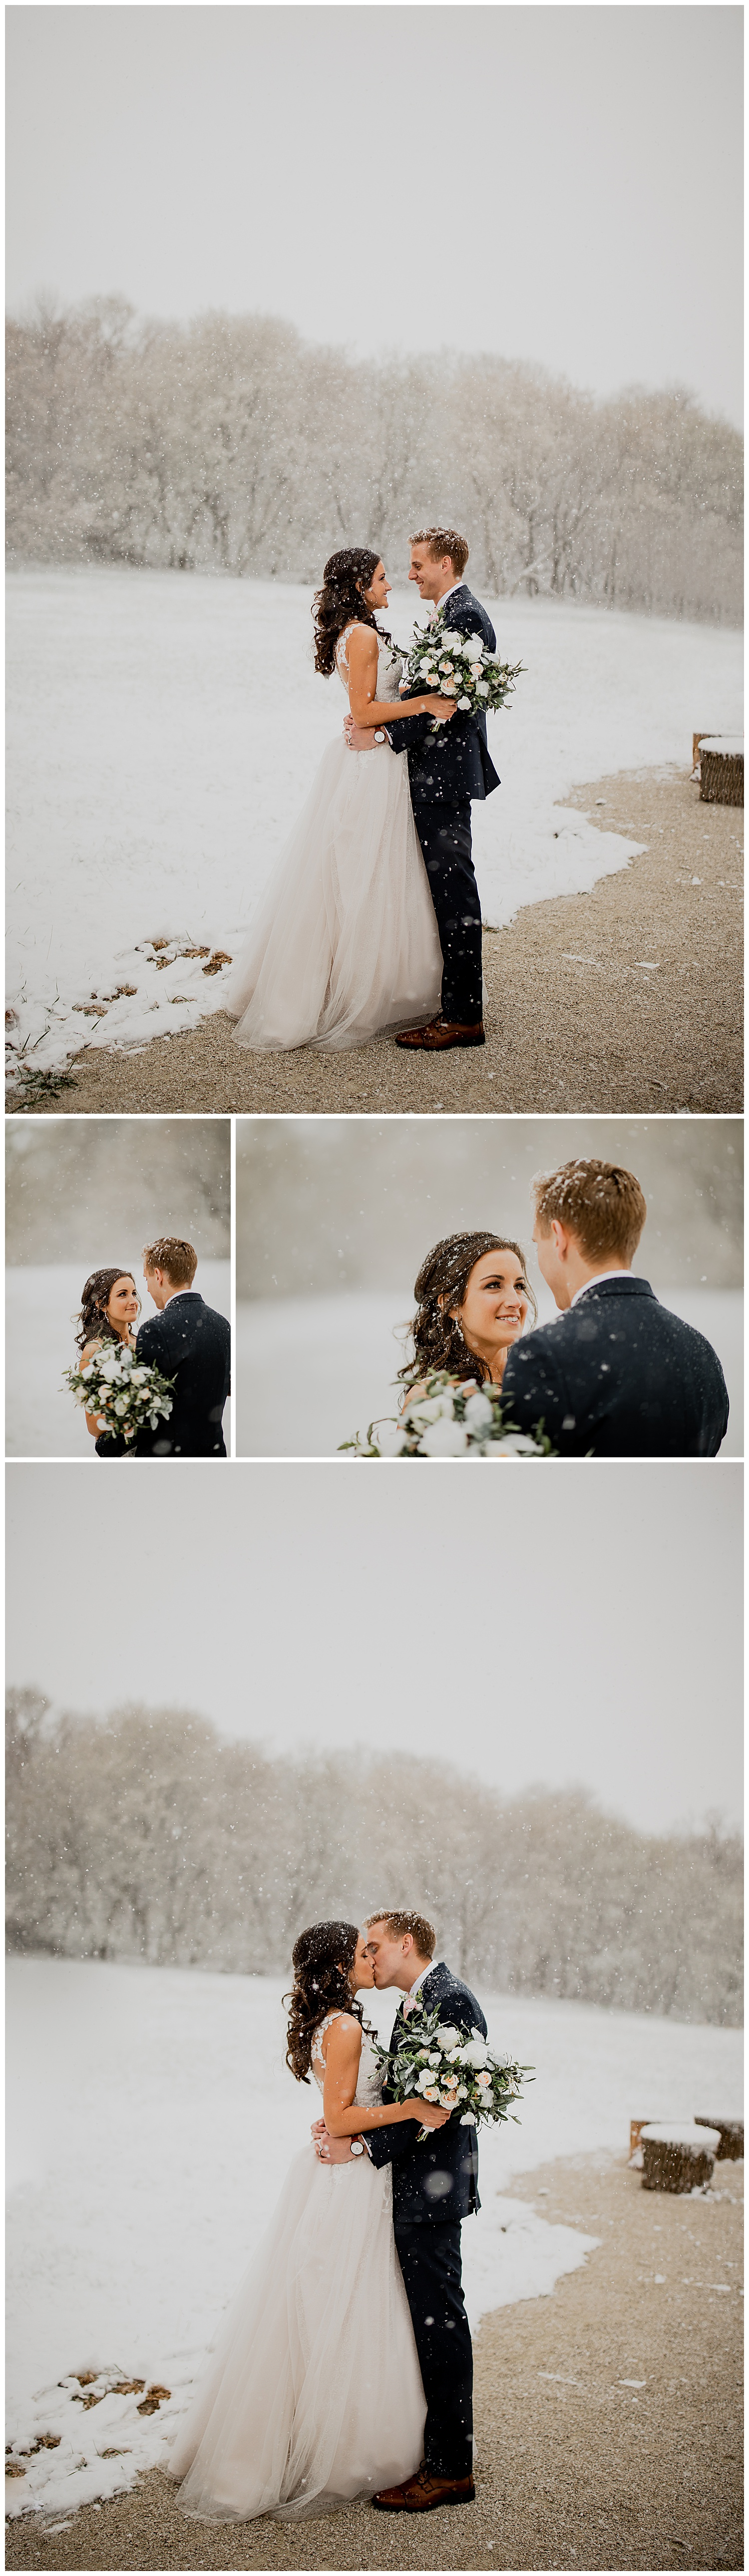 WISCONSIN WEDDING PHOTOGRAPHER 27.jpg